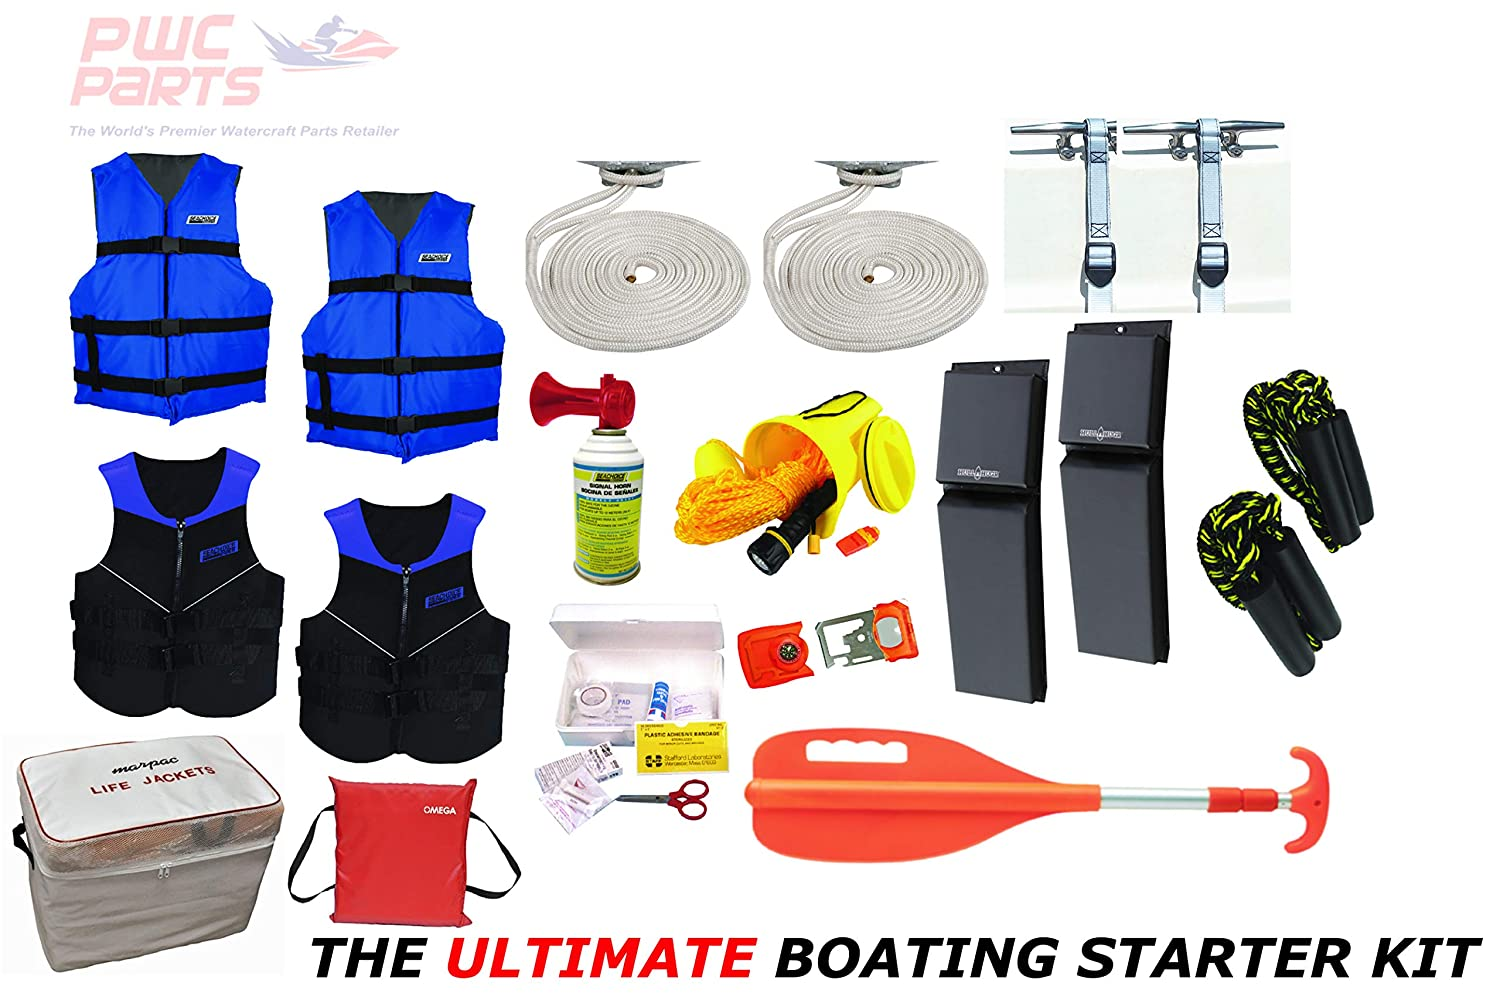 Amazon com : PWC Parts Ultimate Boating Starter Kit for All